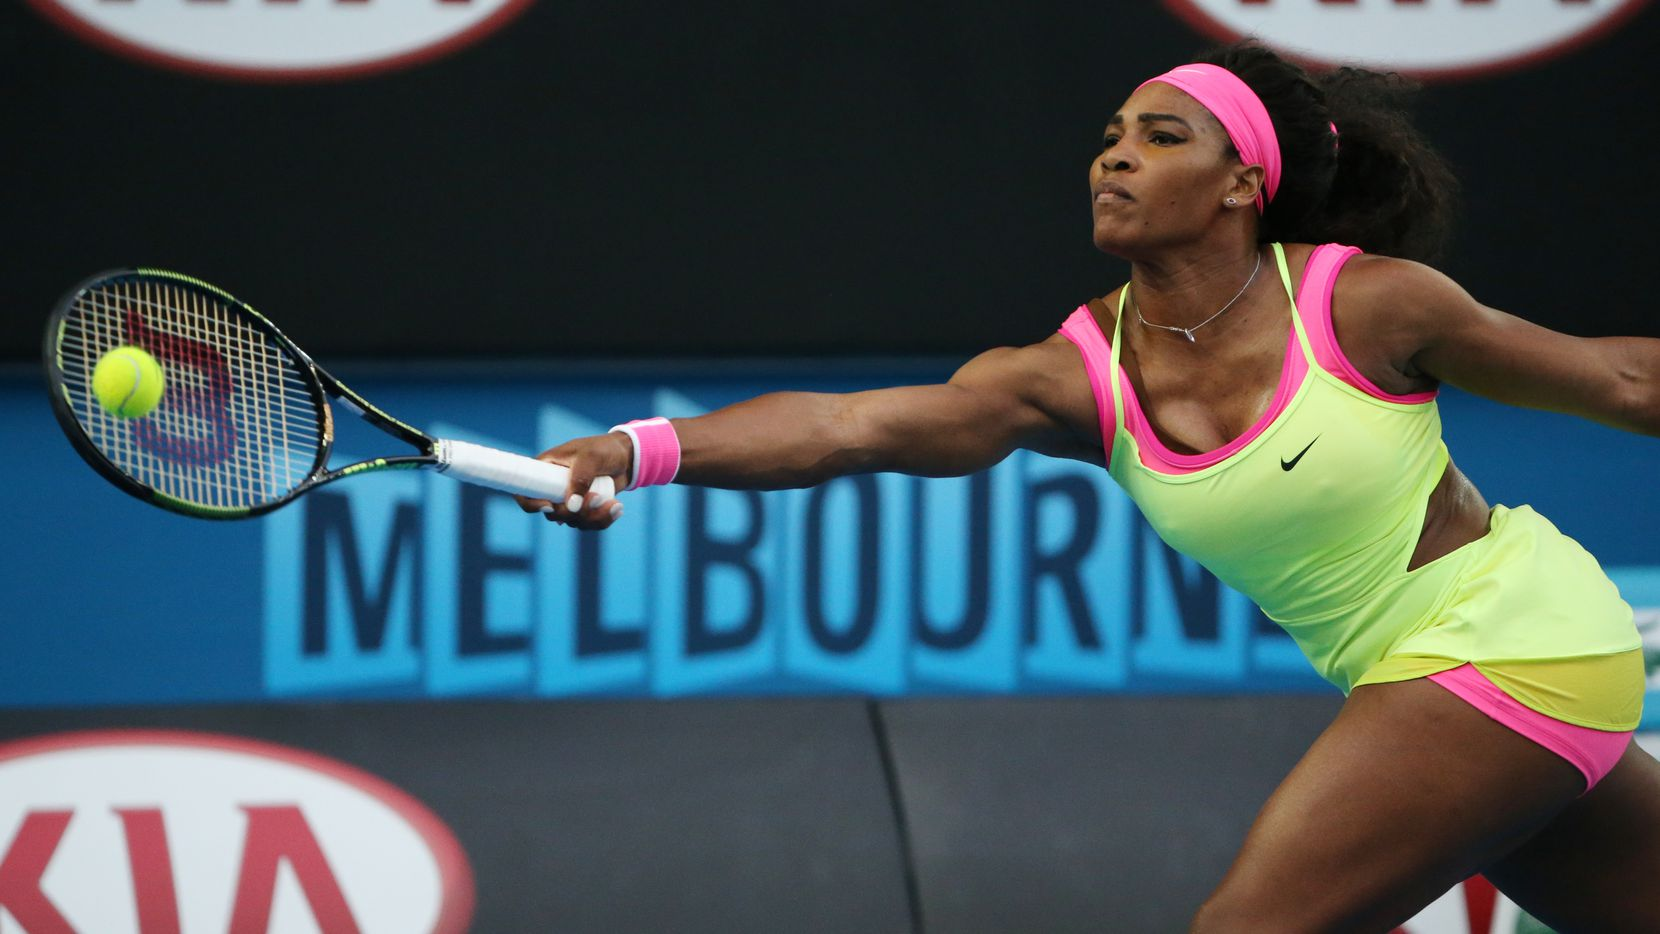 Serena Williams of the U.S. makes a forehand return to Alison Van Uytvanck of Belgium during their first round match at the Australian Open tennis championship in Melbourne, Australia, Tuesday, Jan. 20, 2015. (AP Photo/Rob Griffith)